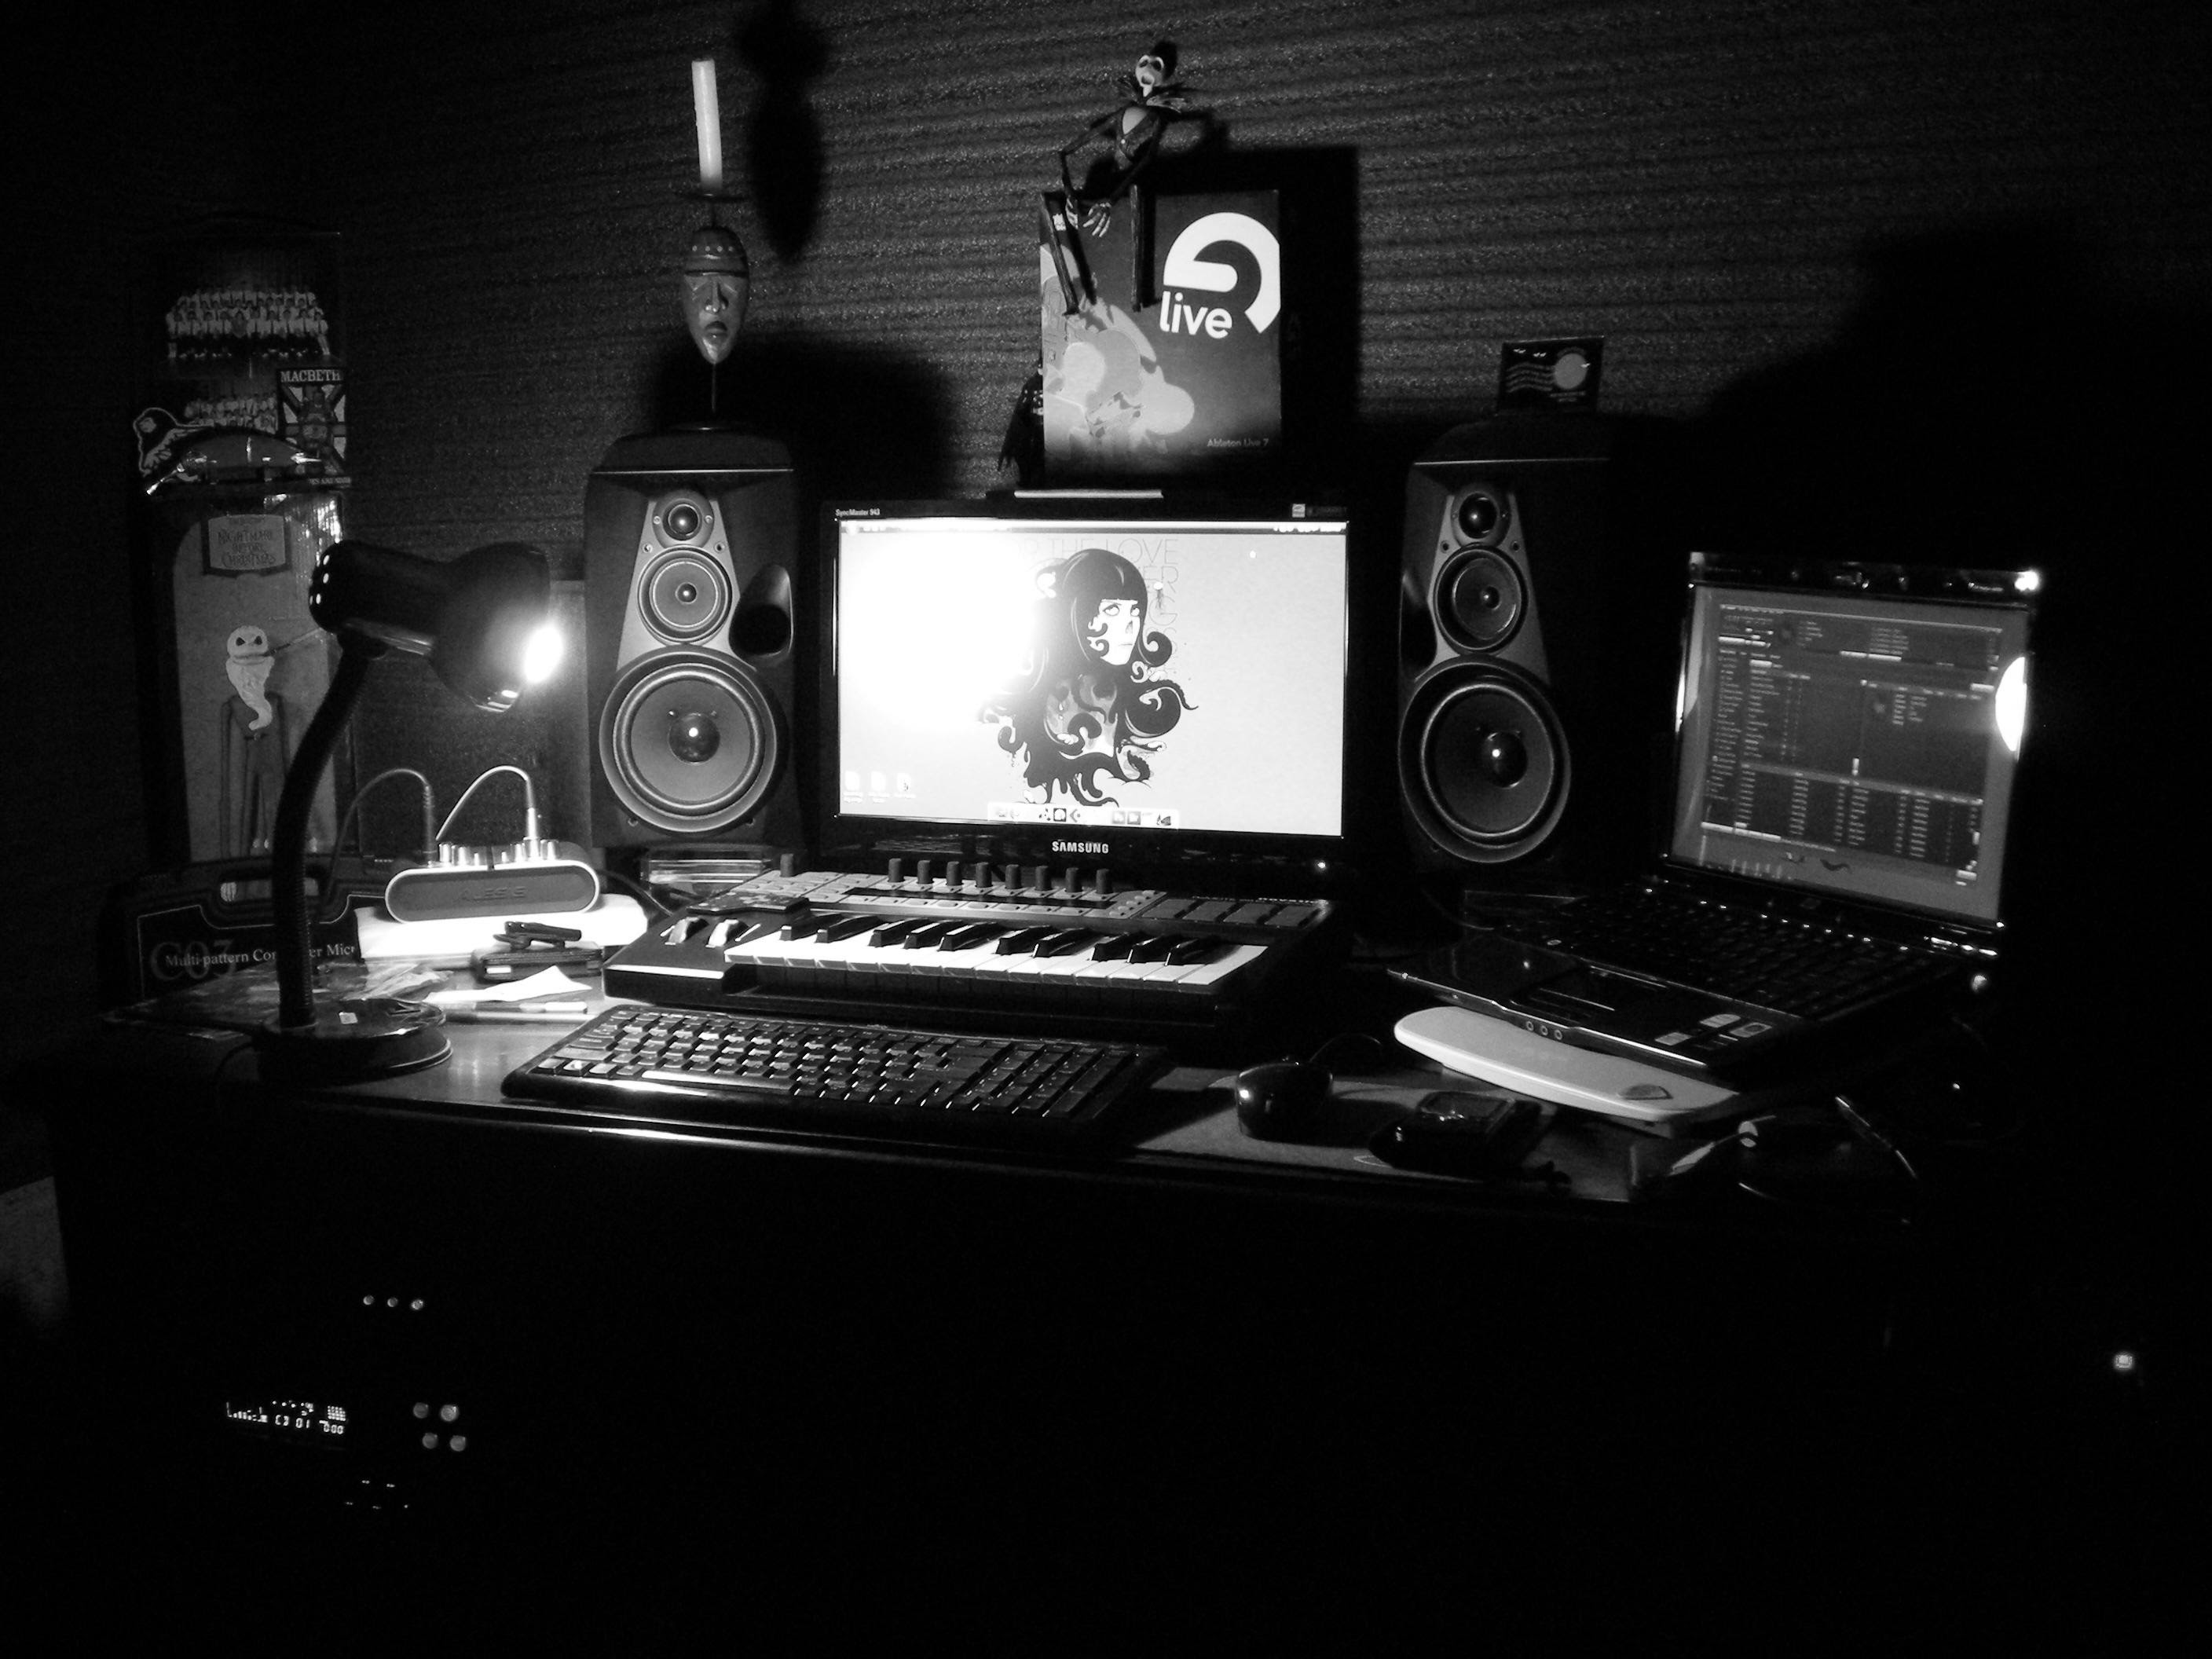 Music Recording Studio HD Wallpaper (74+ images)